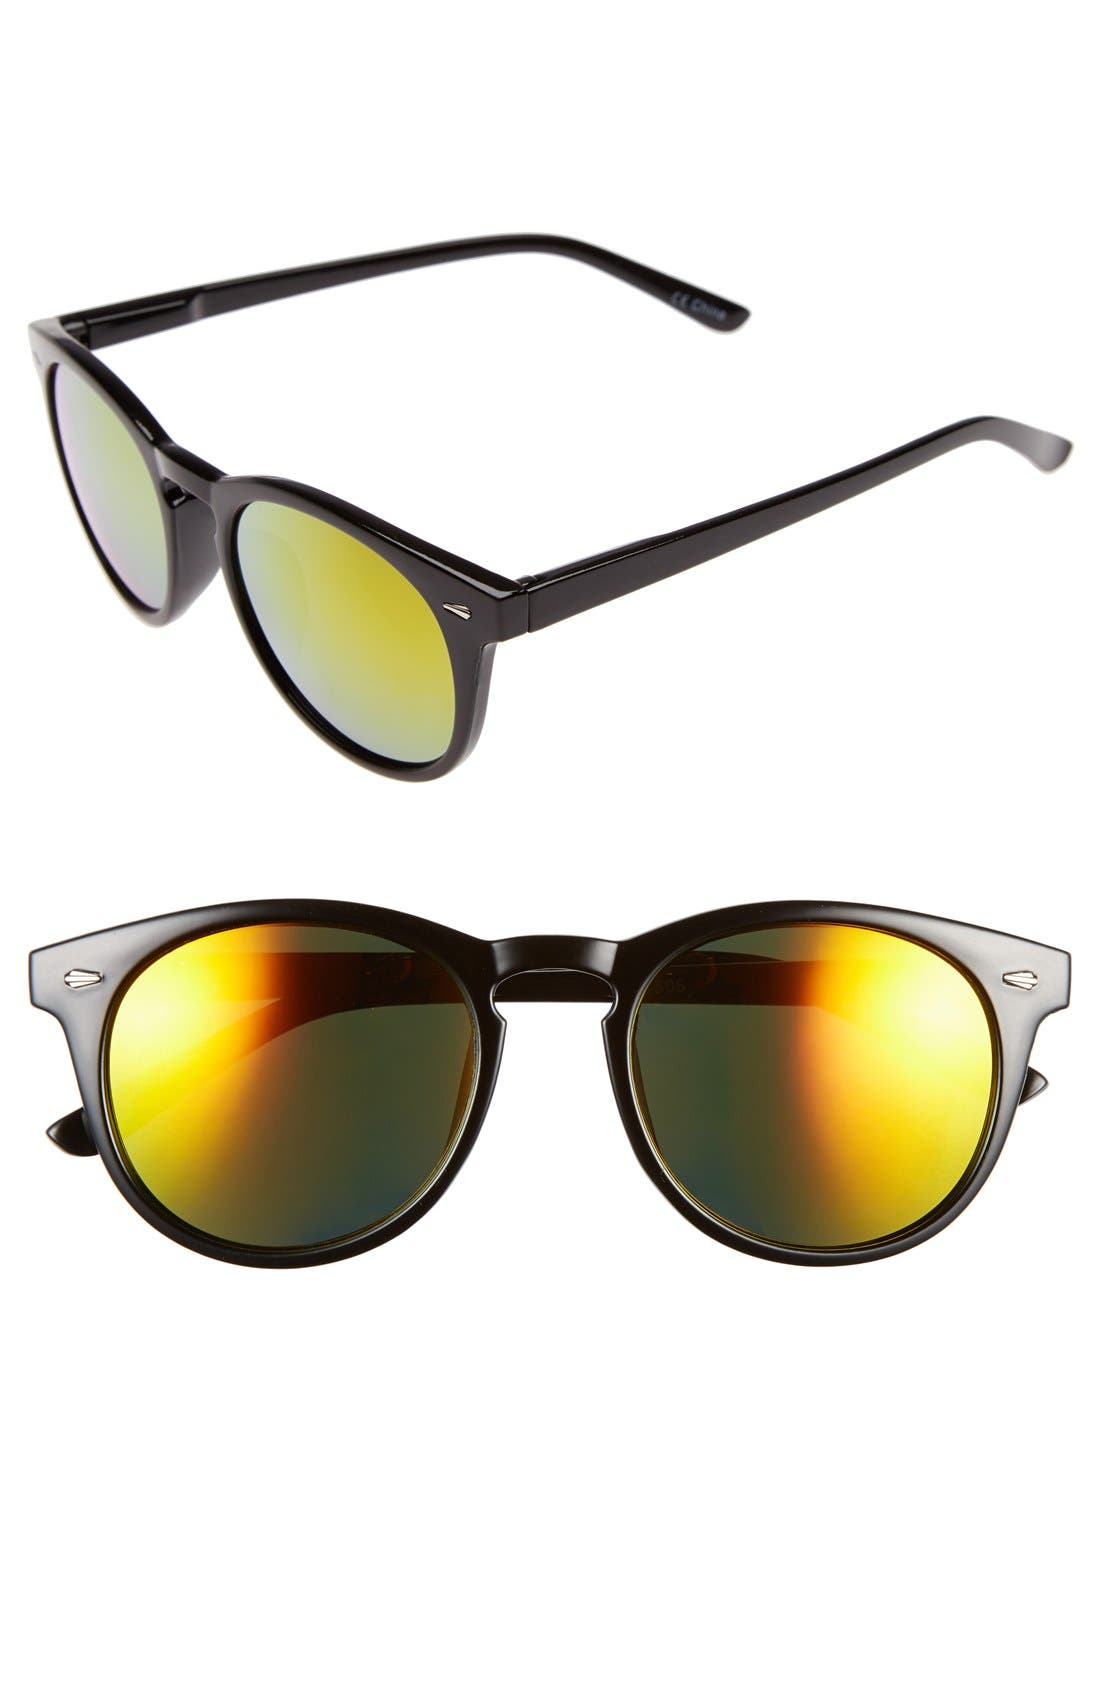 Main Image - Sole Society 'Kate' 48mm Round Mirrored Sunglasses